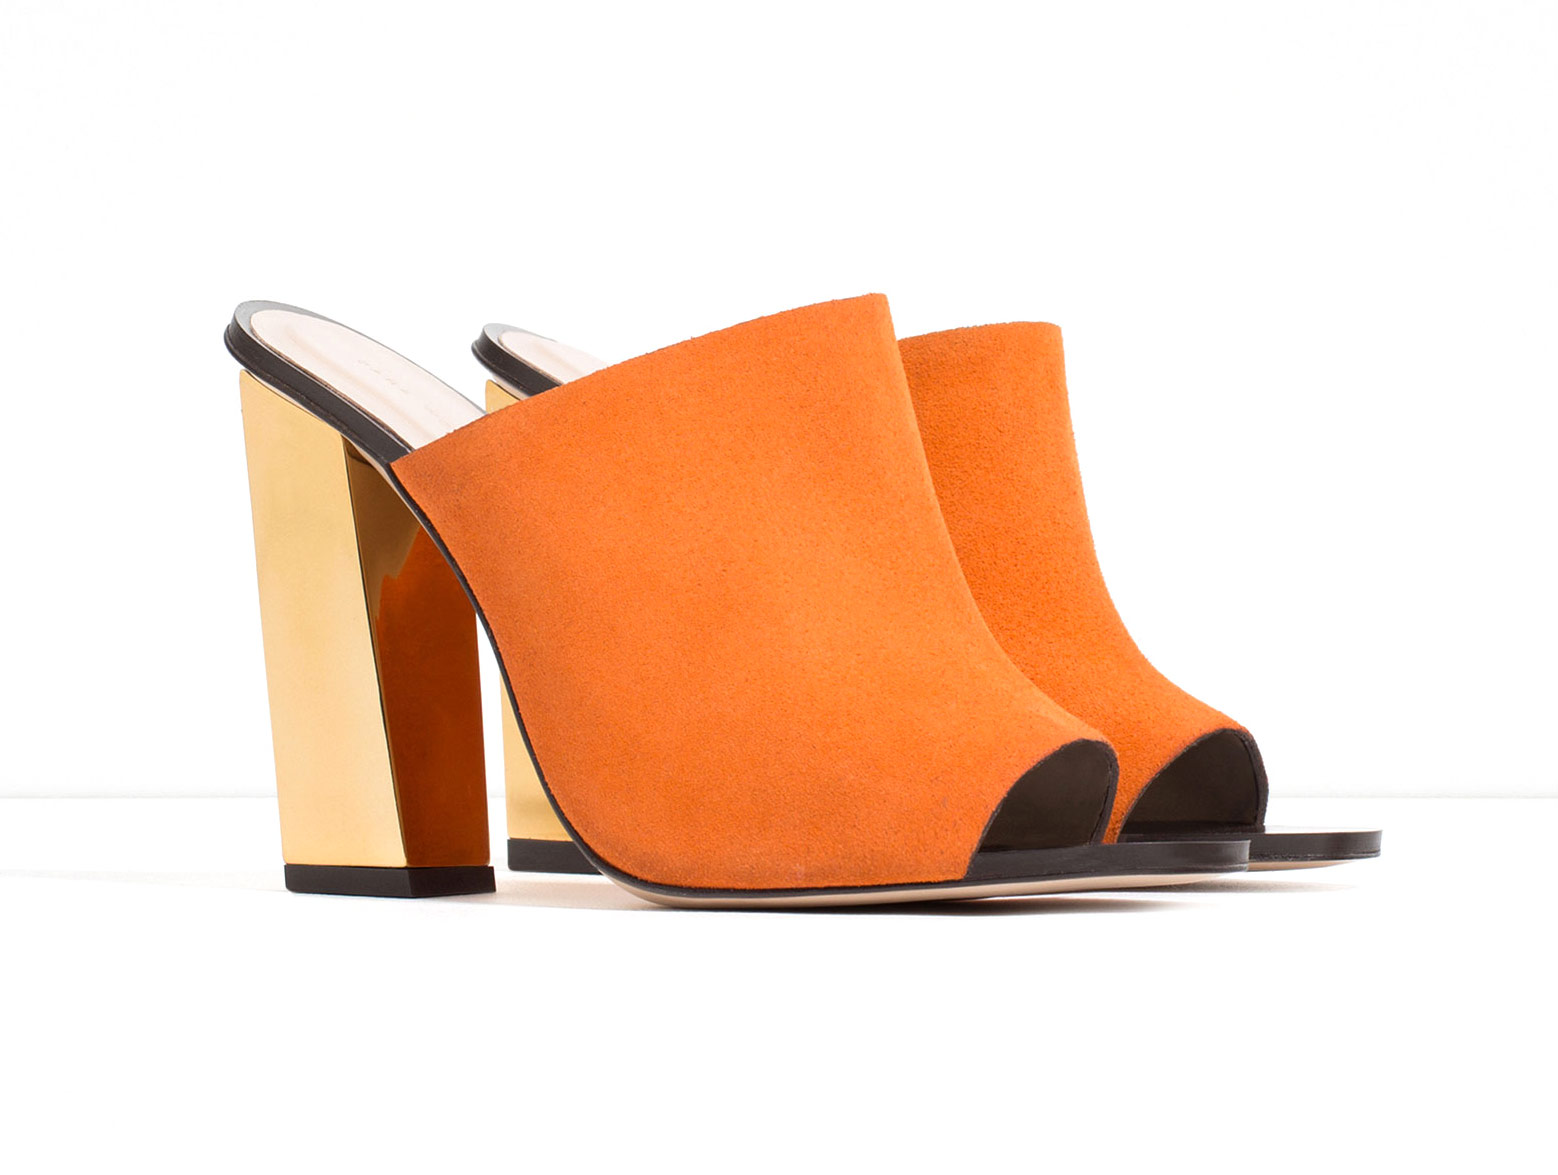 €59,95 by Zara (available here)